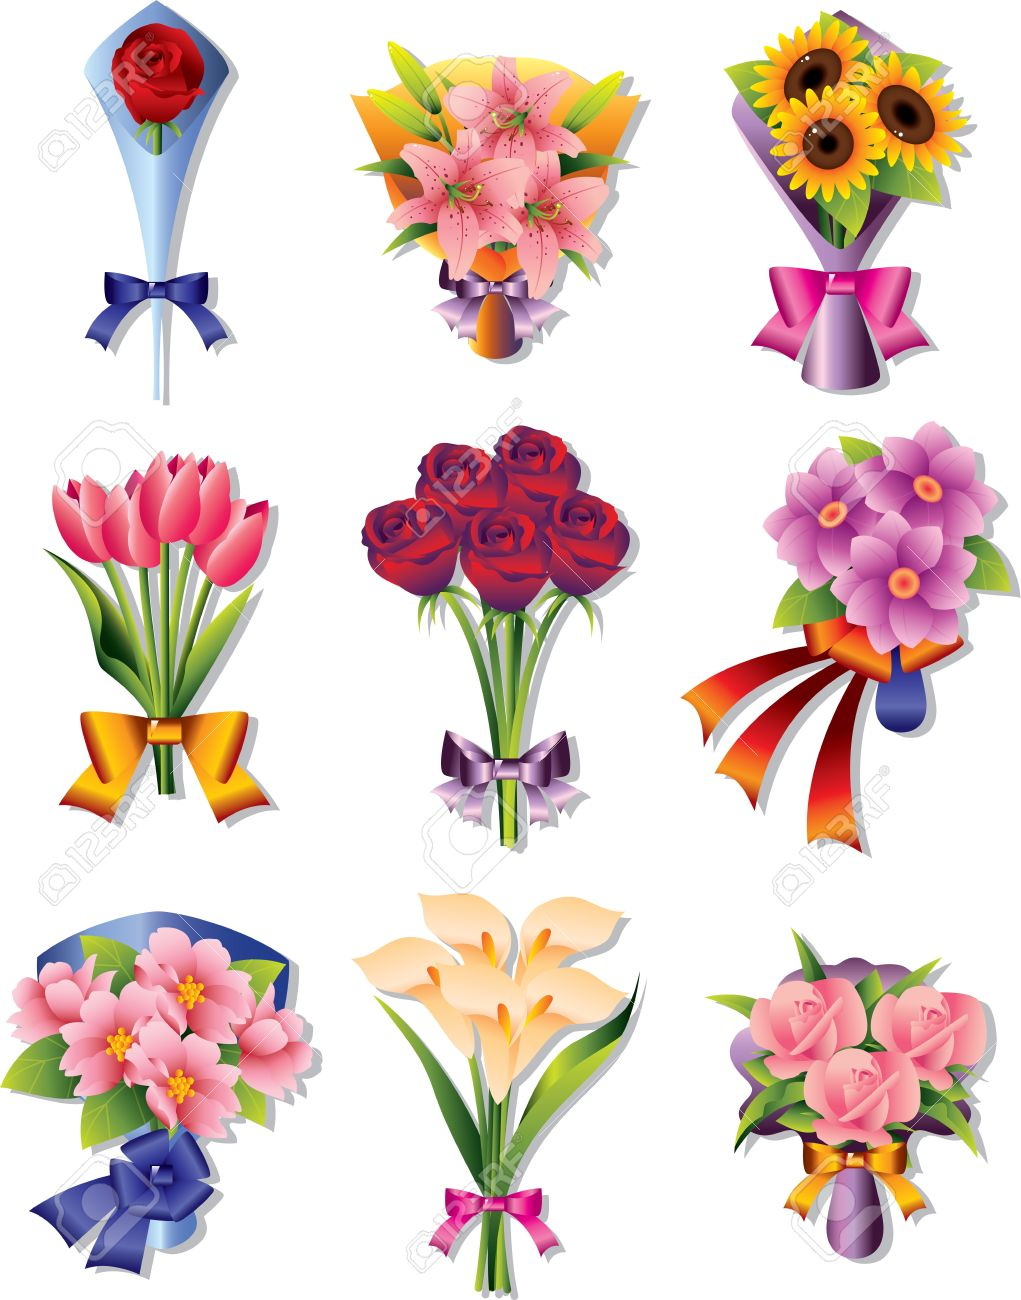 Flower Bouquet Icons Royalty Free Cliparts, Vectors, And Stock ...